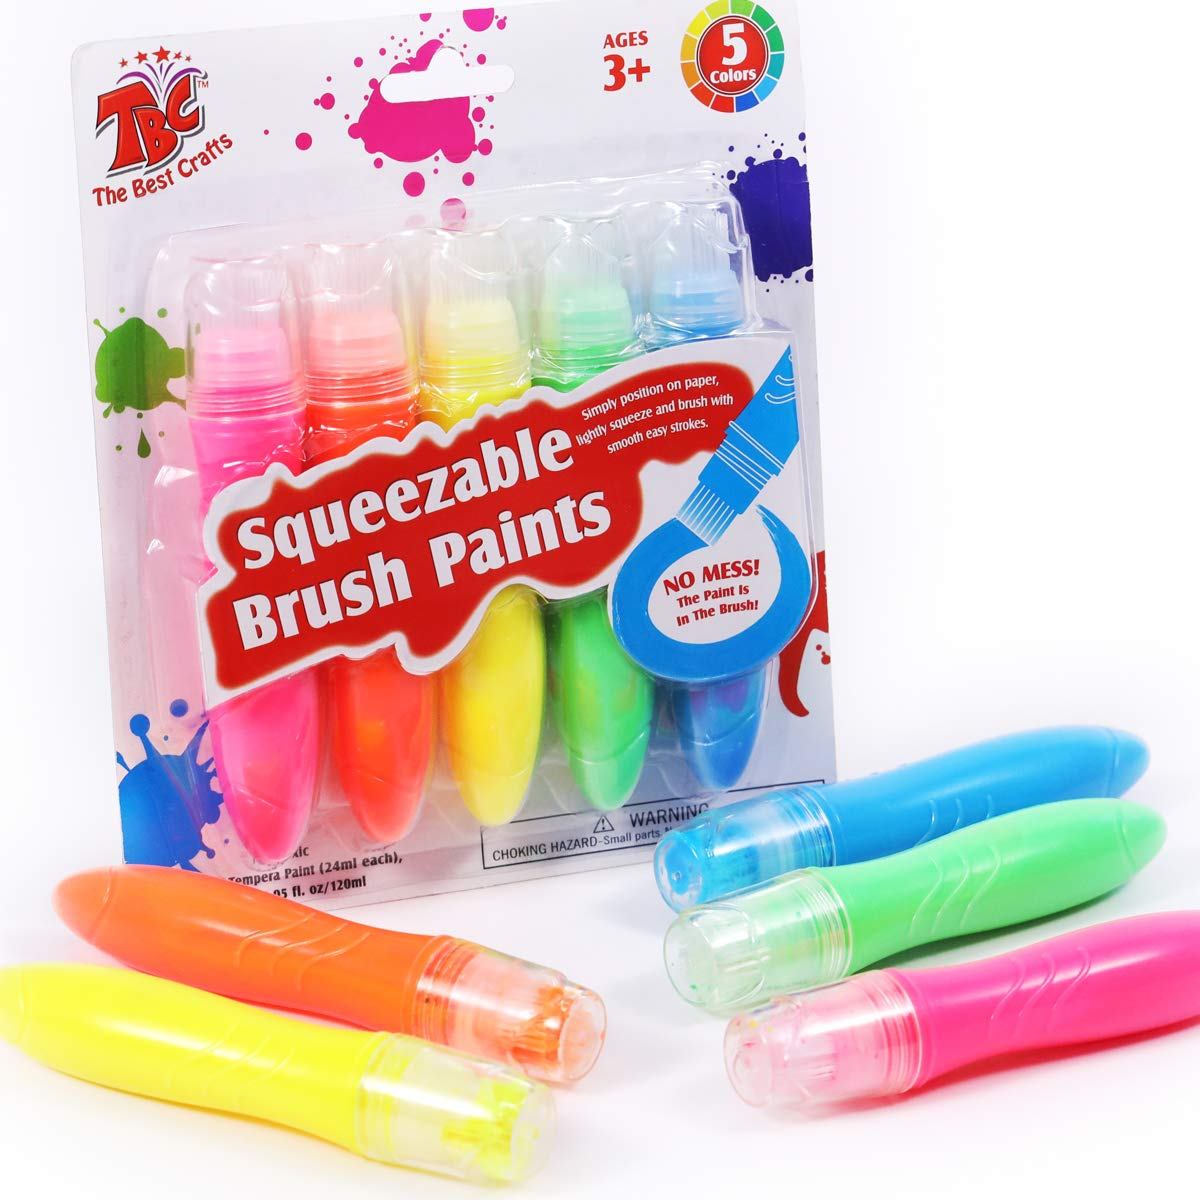 TBC The Best Crafts 5 Neon Colors Squeezable Brush Paints, Washable Tempera Paint Brushes, Toddlers Grip Strengthening Squeezable Tubes, Easy to Paint, Kids Early Learning Art Toy